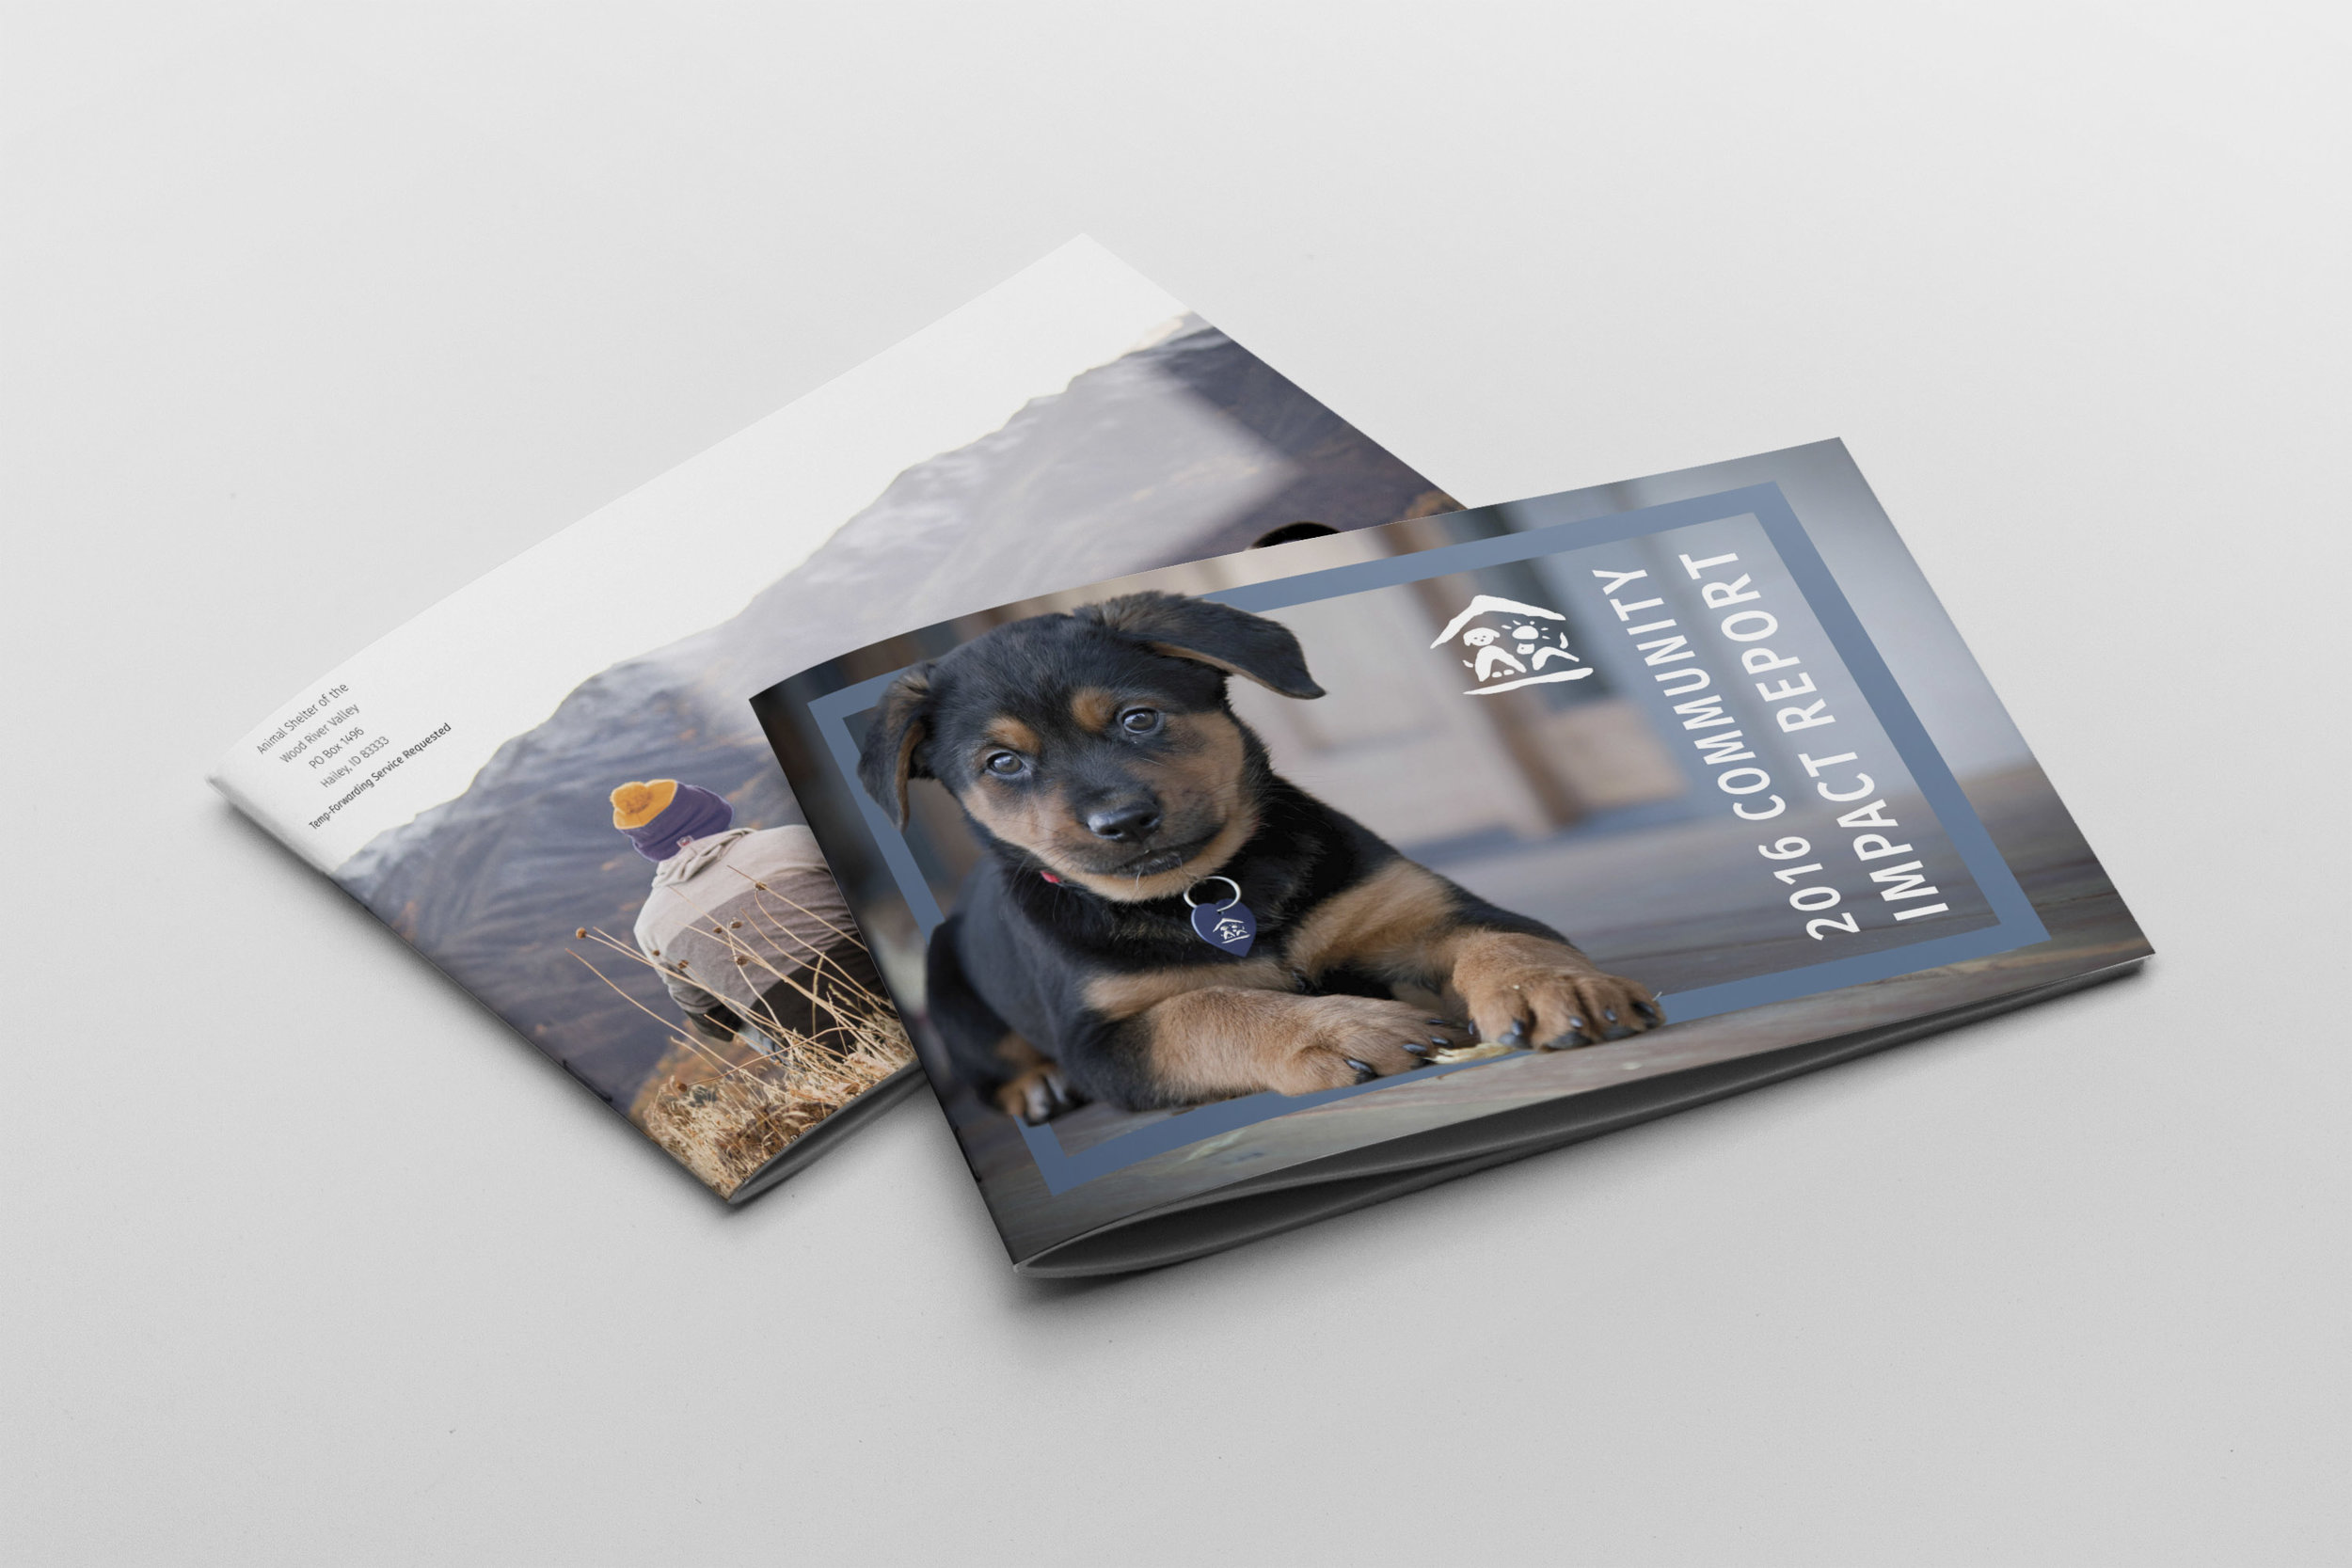 - To better understand Mountain Humane's impact and achievements, check out last year's Community Impact Report!